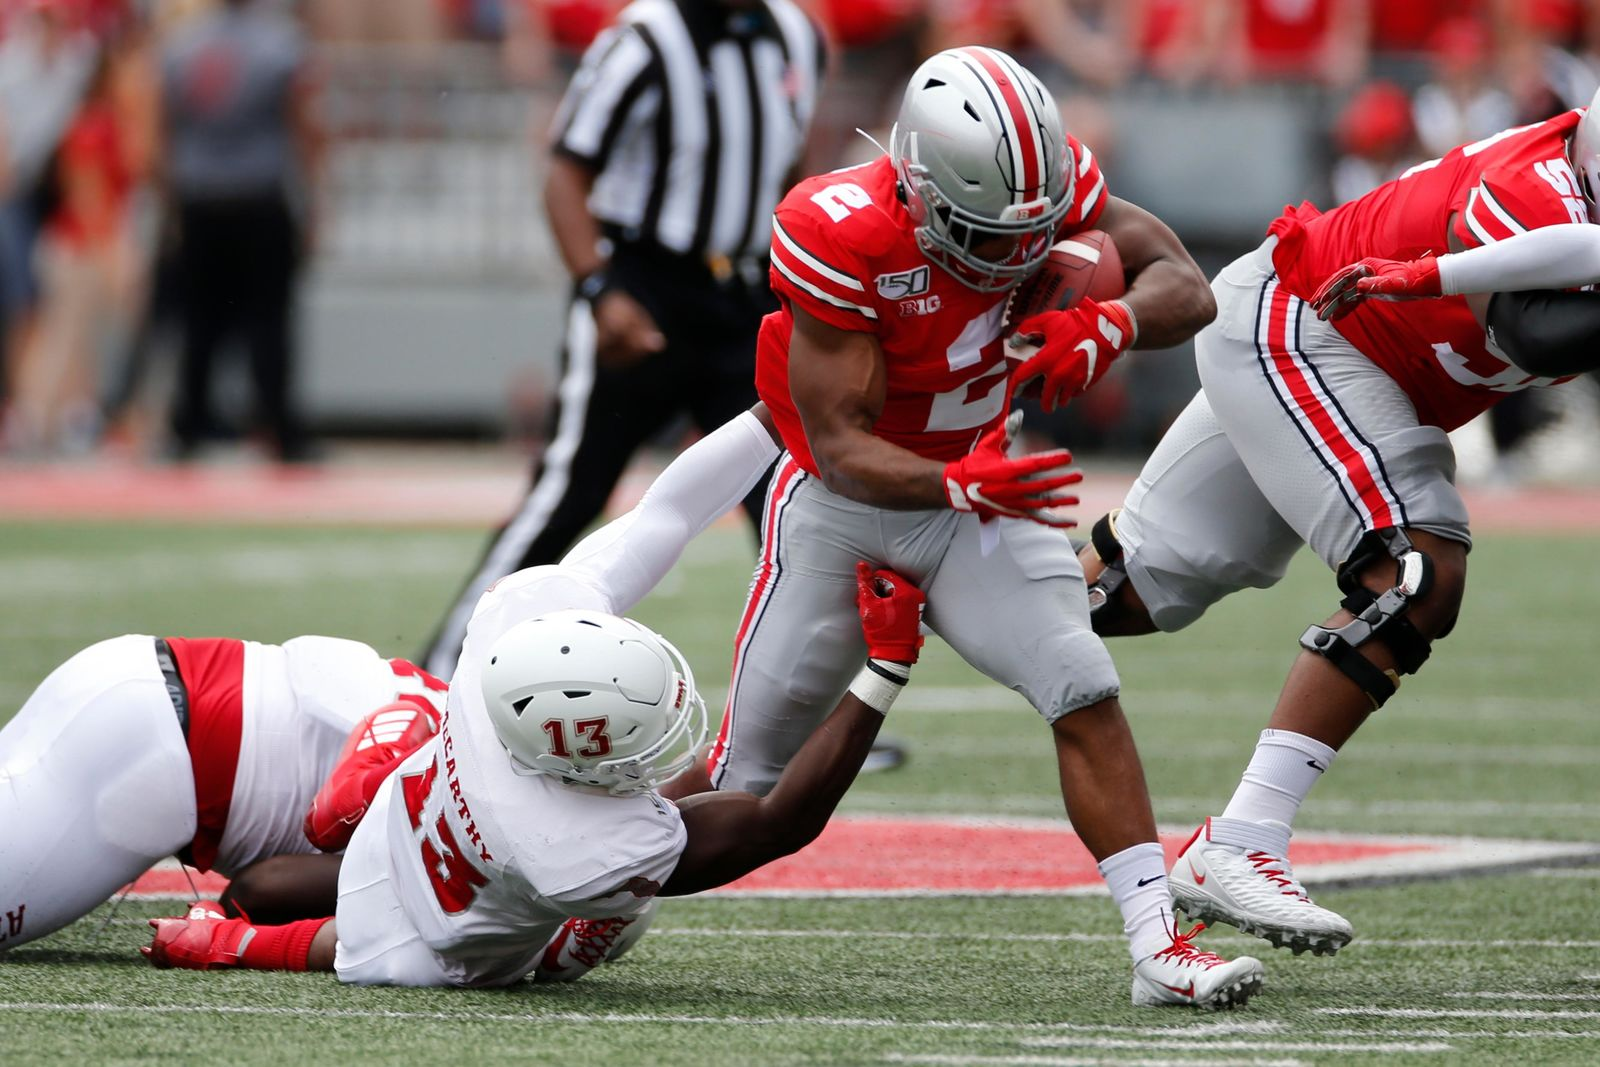 Ohio State running back J.K. Dobbins is tackled by Florida Atlantic defensive lineman Leighton McCarthy during the first half of an NCAA college football game Saturday, Aug. 31, 2019, in Columbus, Ohio. (AP Photo/Jay LaPrete)